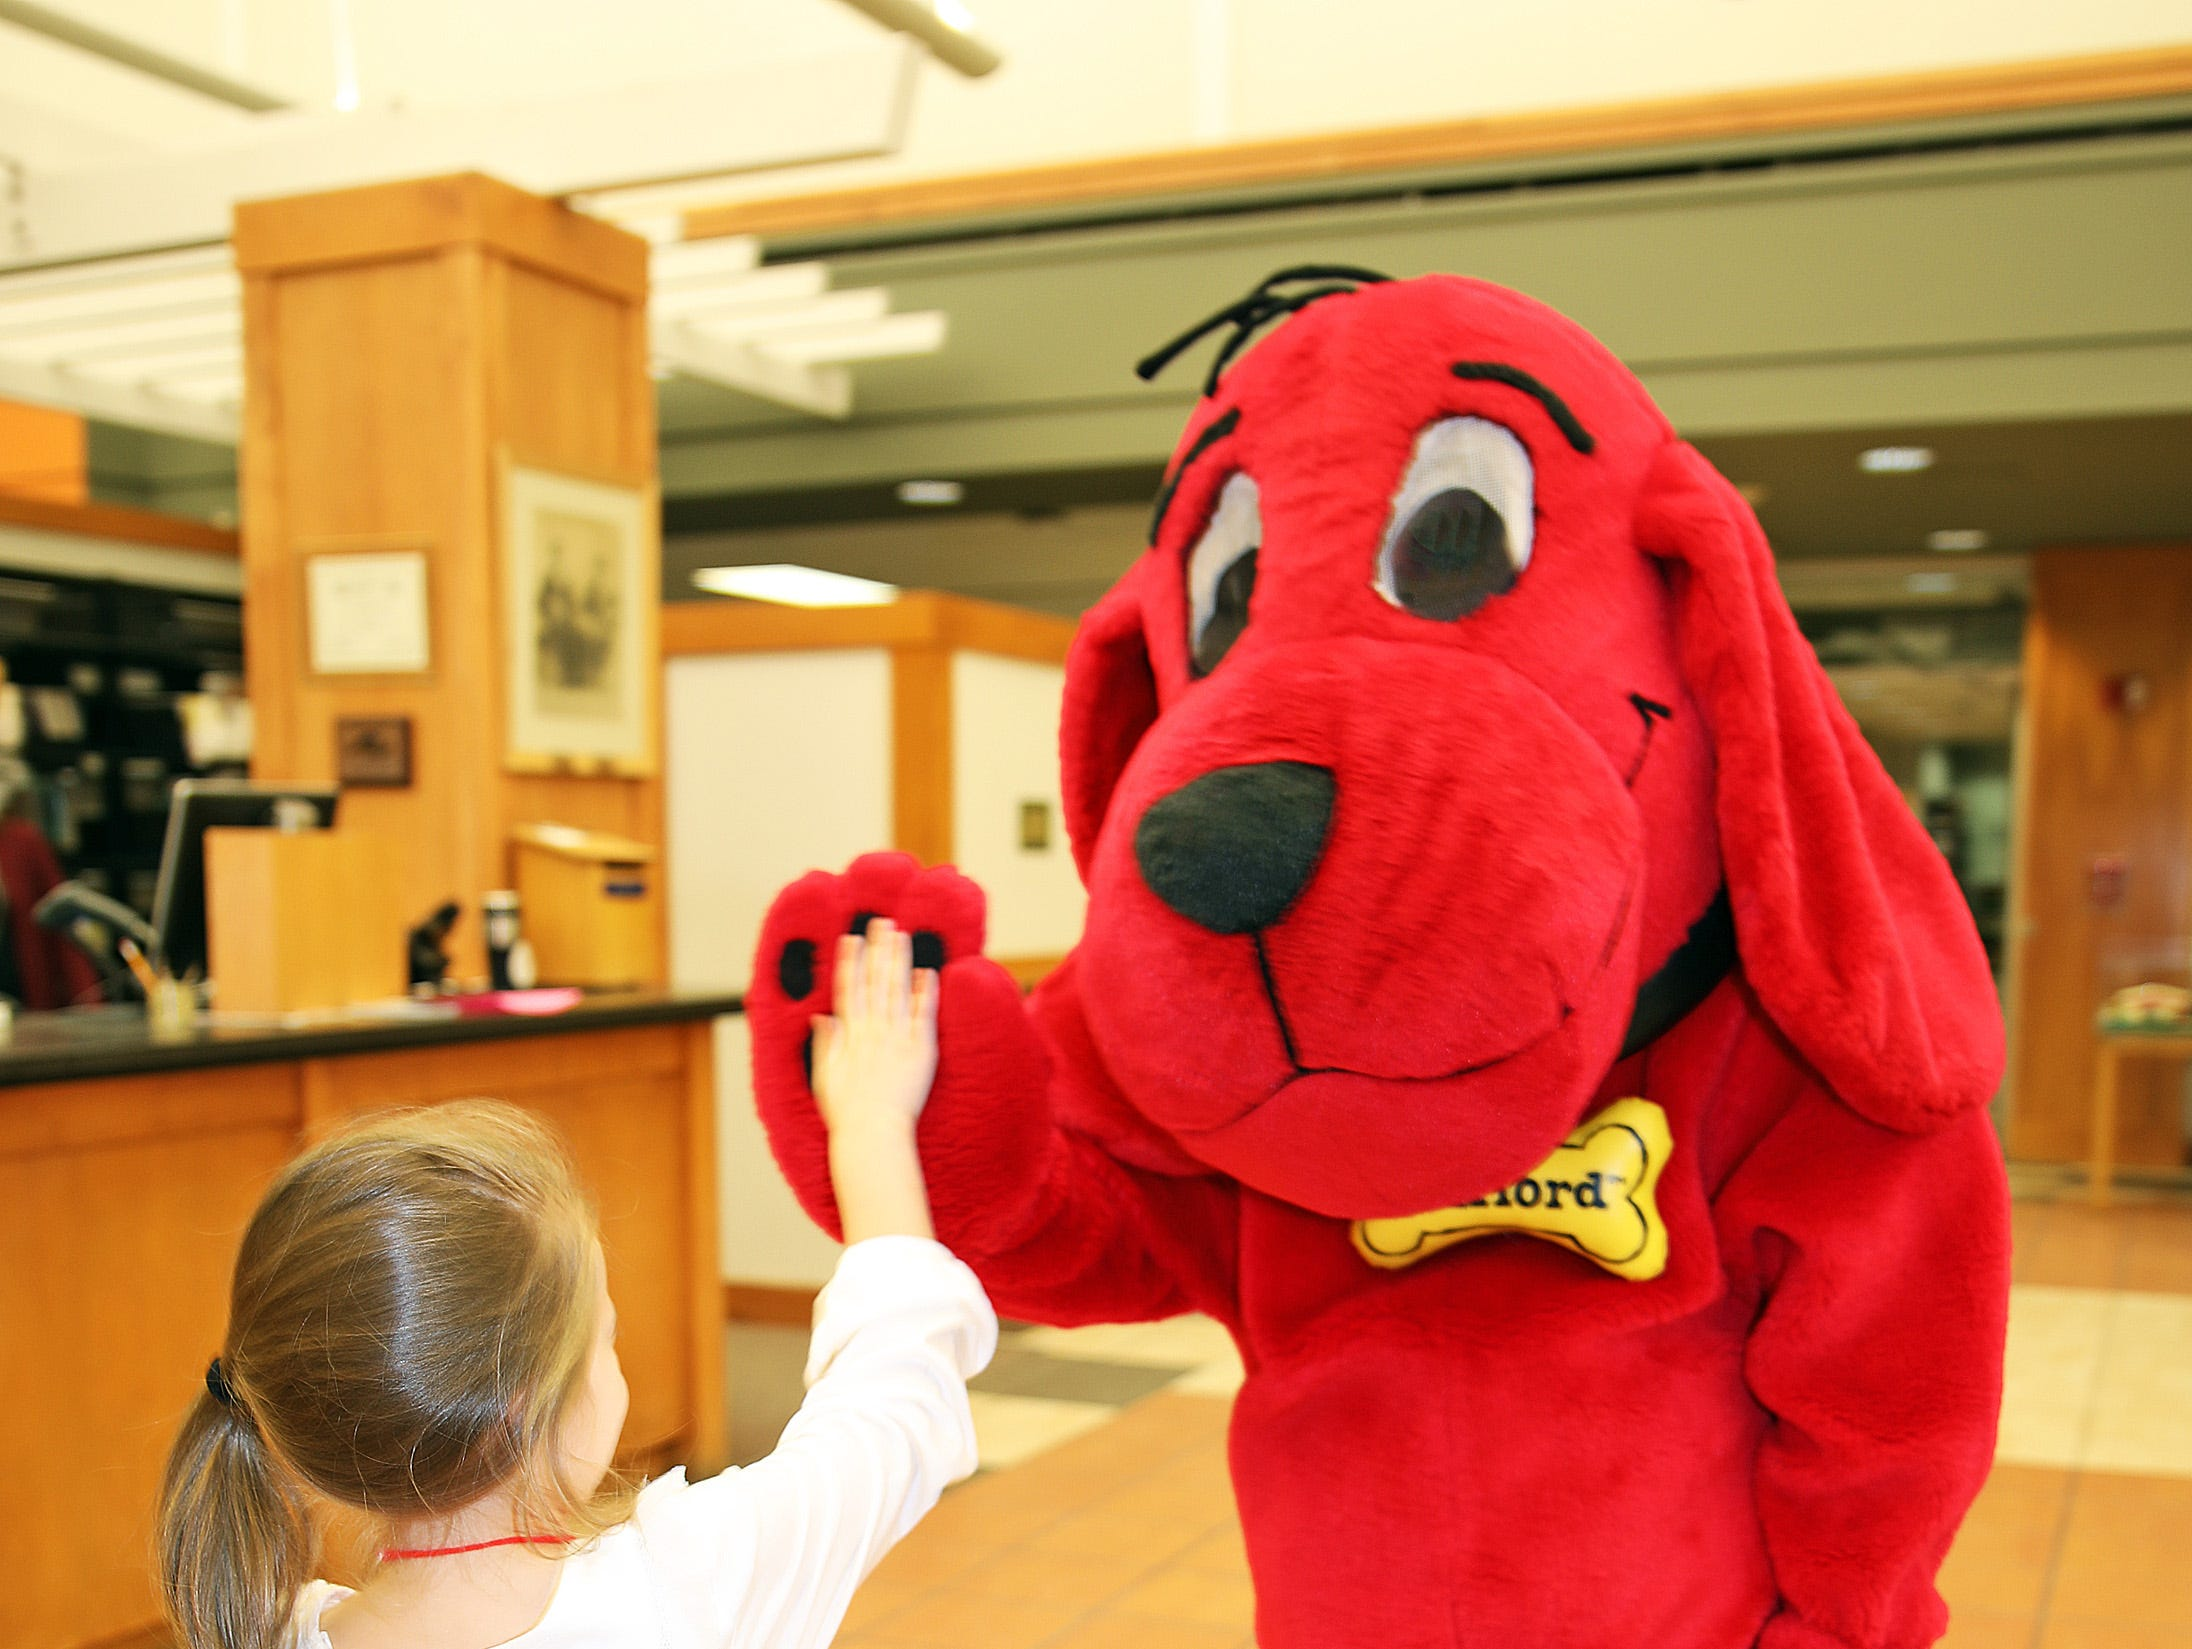 Clifford the Big Red Dog gives Adisyn Metzger, 5, of Ankeny a high-five during his birthday party at Kirkendall Public Library in Ankeny on Tuesday, Feb. 5, 2019.